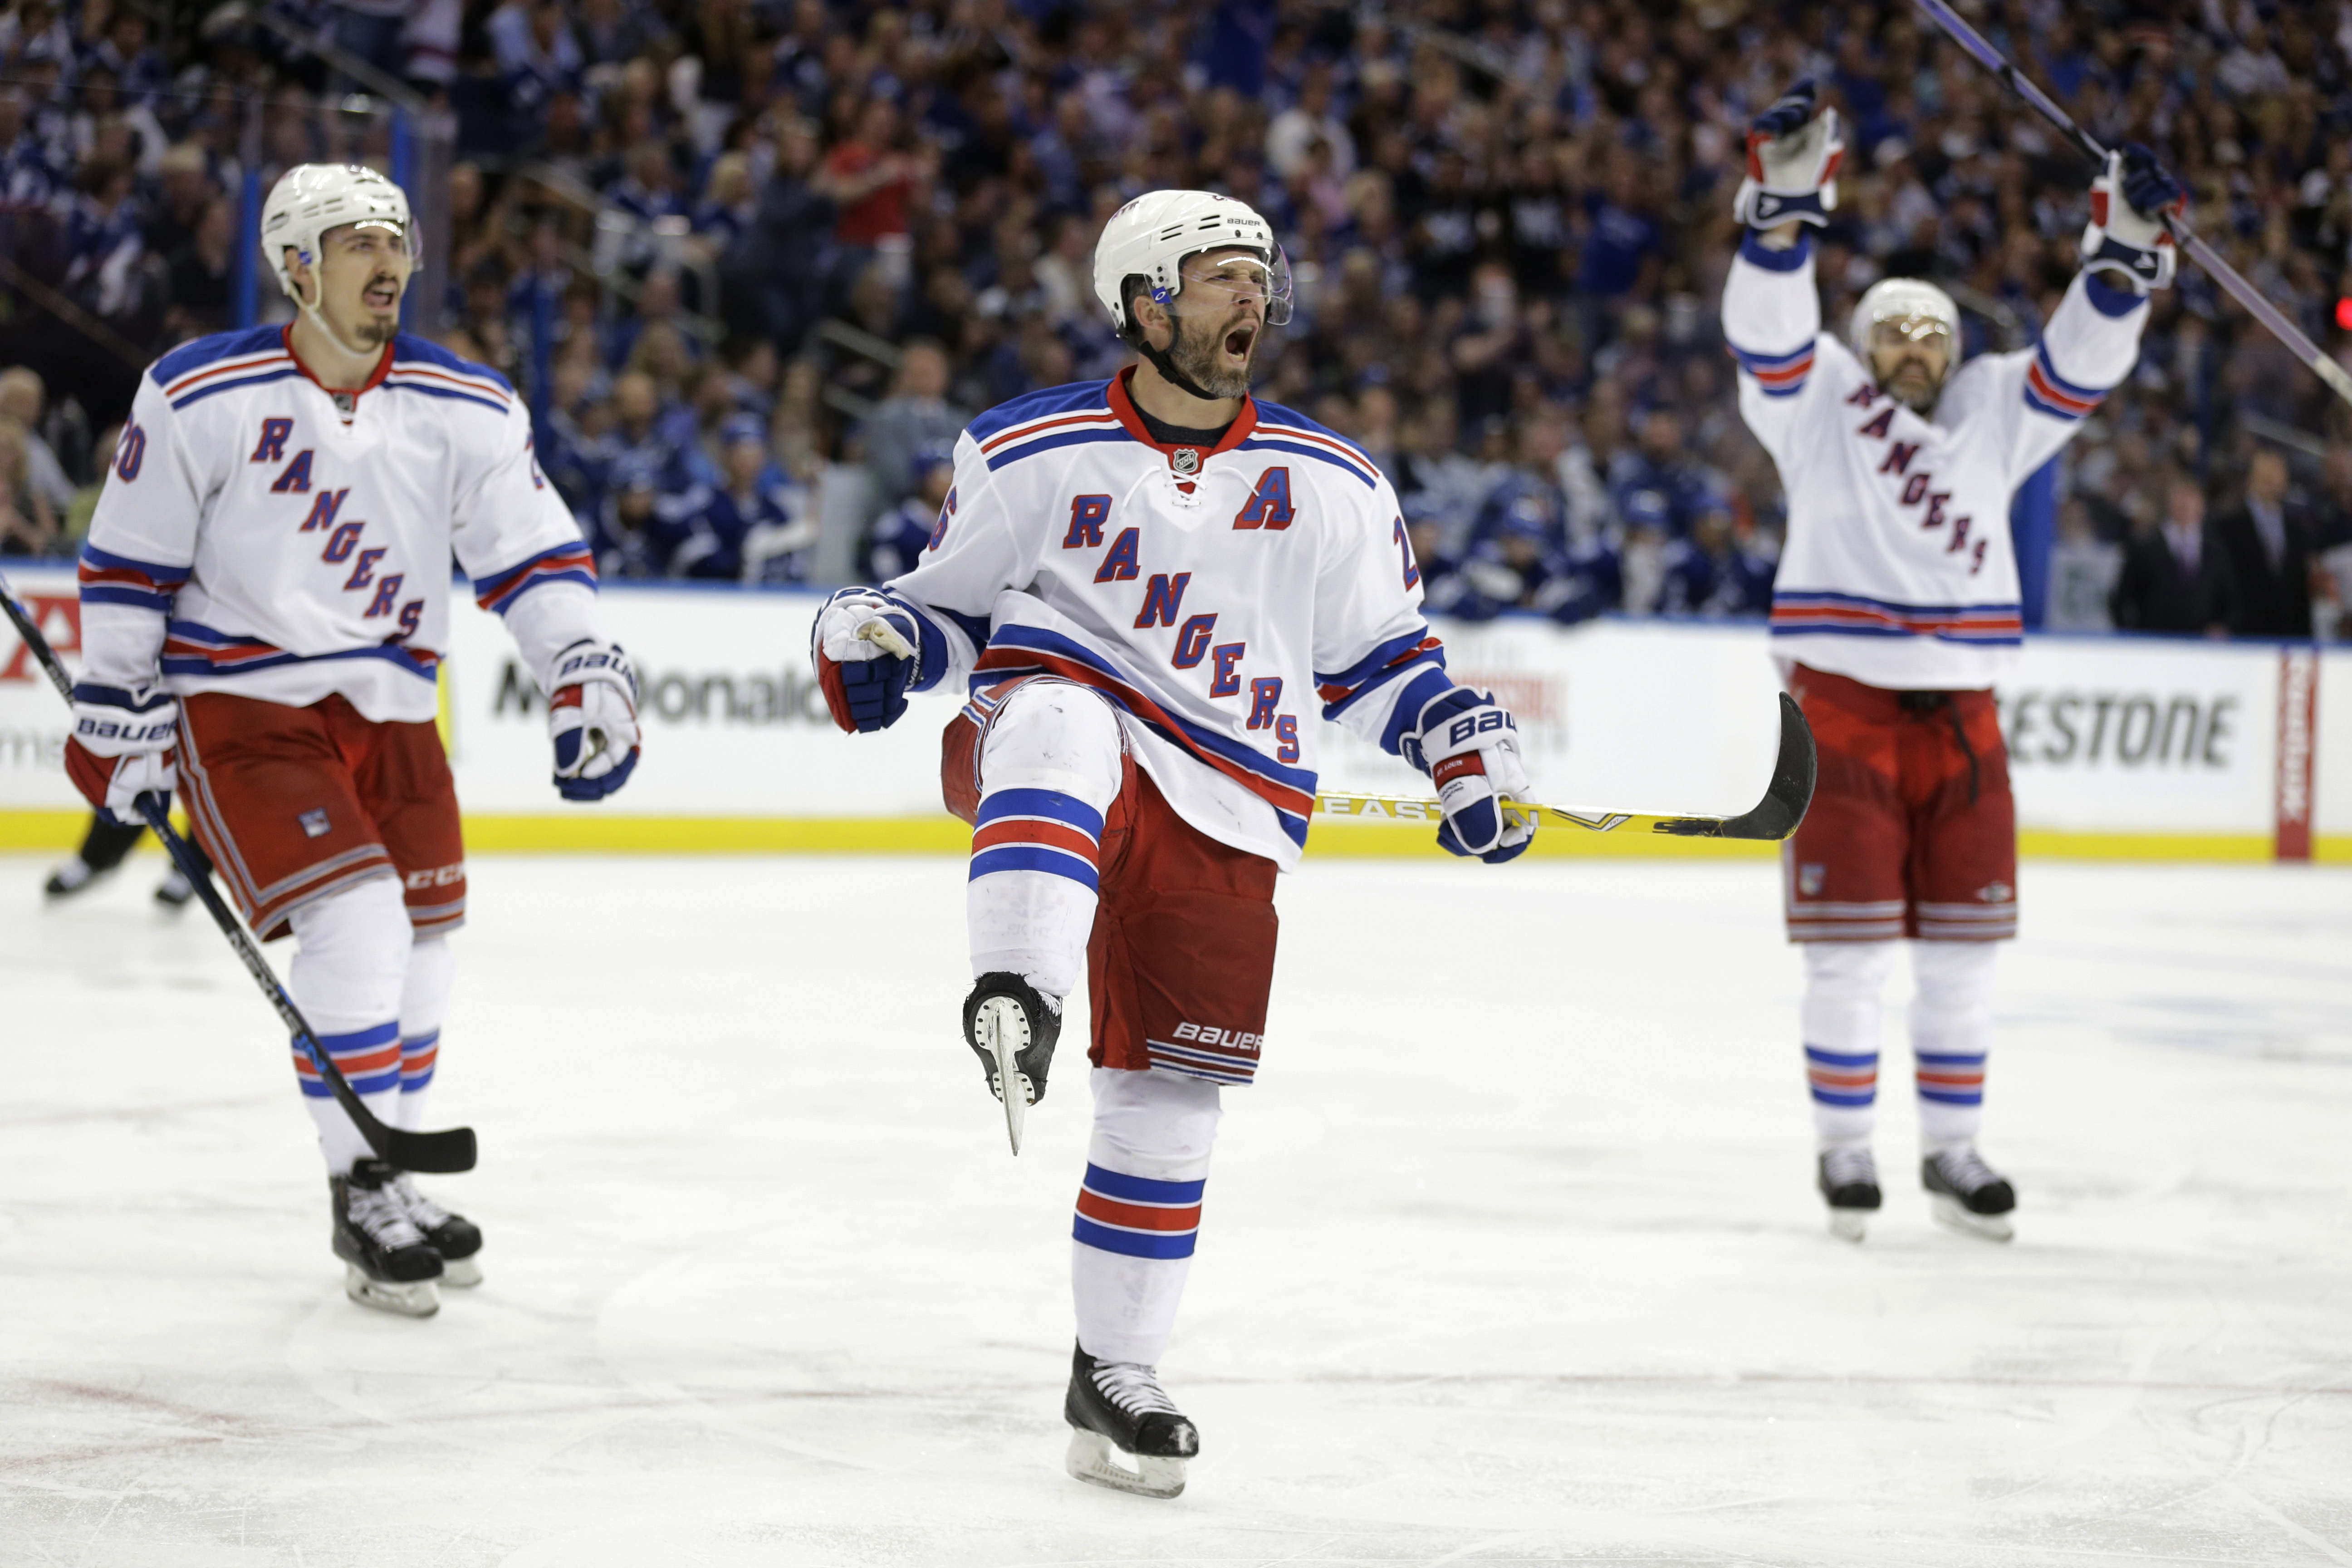 New York Rangers right wing Martin St. Louis, center, celebrates after scoring a goal during the third period of Game 4 of the Eastern Conference finals against the Tampa Bay Lightning, in the NHL hockey Stanley Cup playoffs, Friday, May 22, 2015, in Tamp